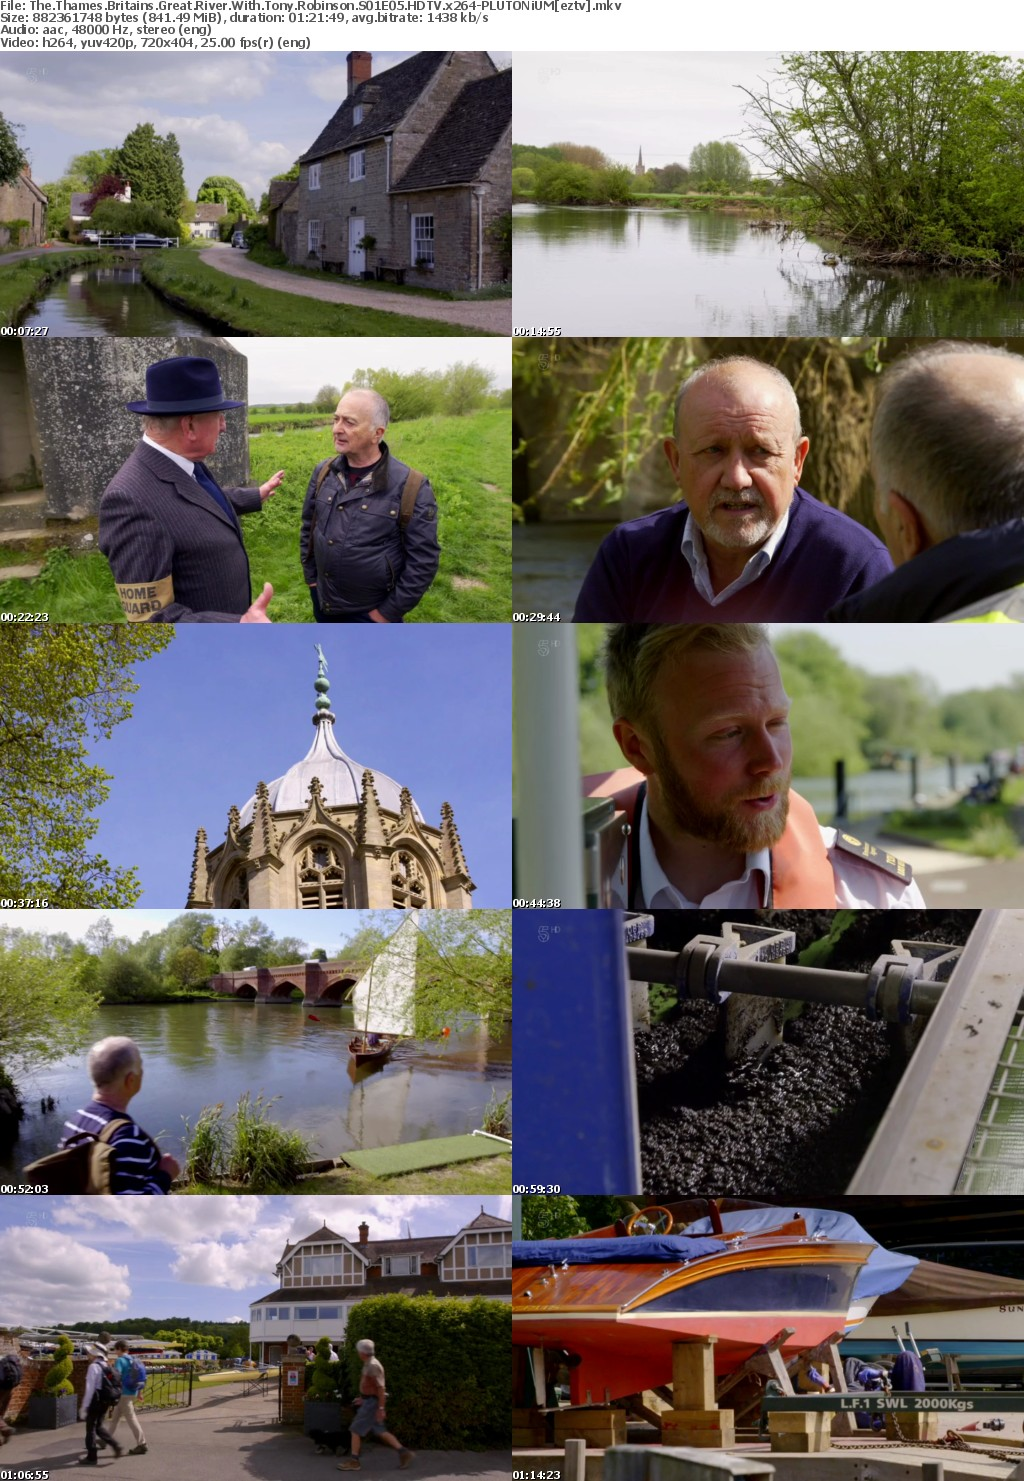 The Thames Britains Great River With Tony Robinson S01E05 HDTV x264 PLUTONiUM